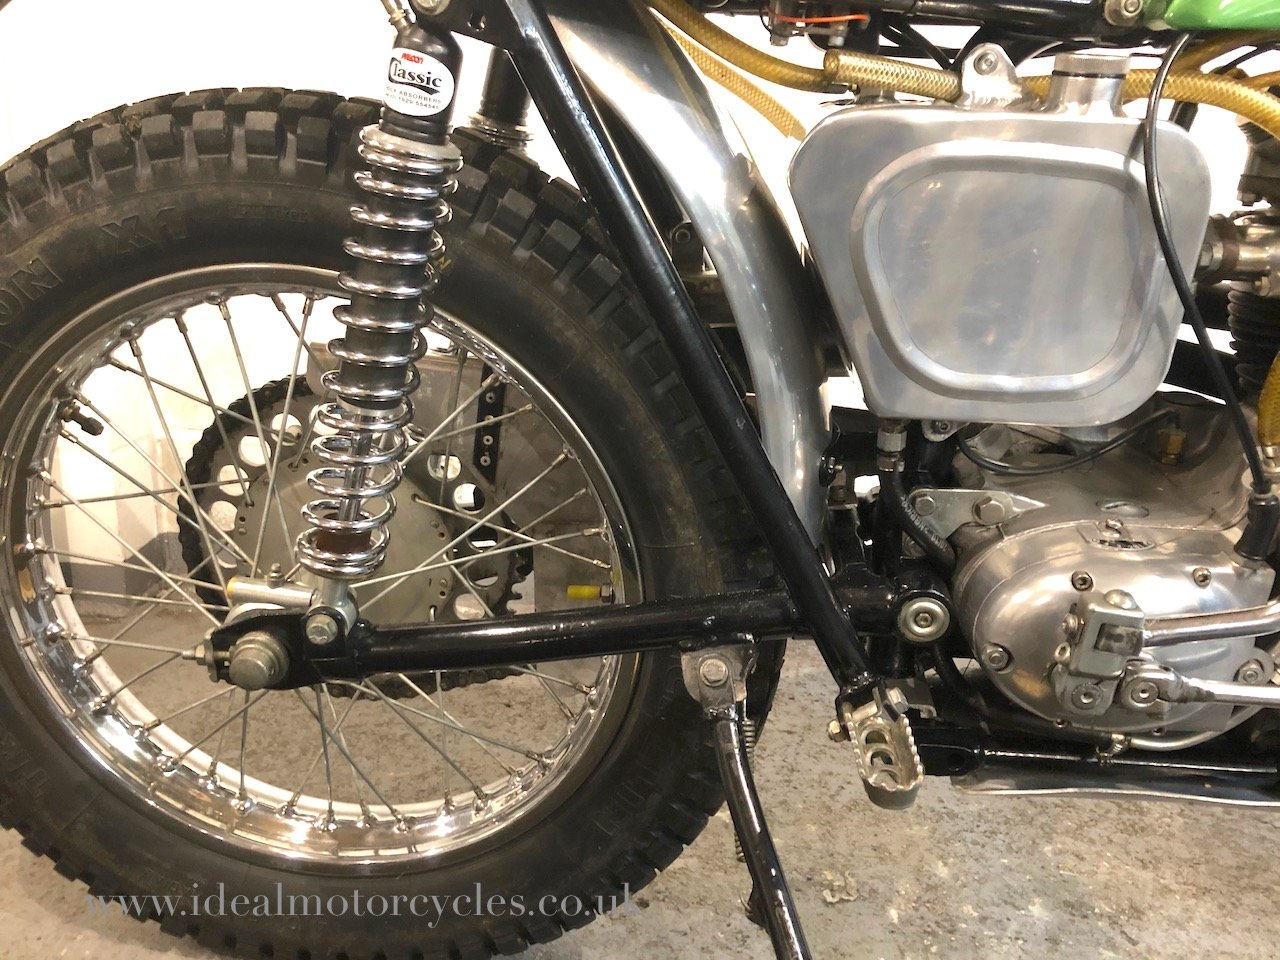 1964 Pre 65 Triumph 350cc Trials For Sale (picture 4 of 6)